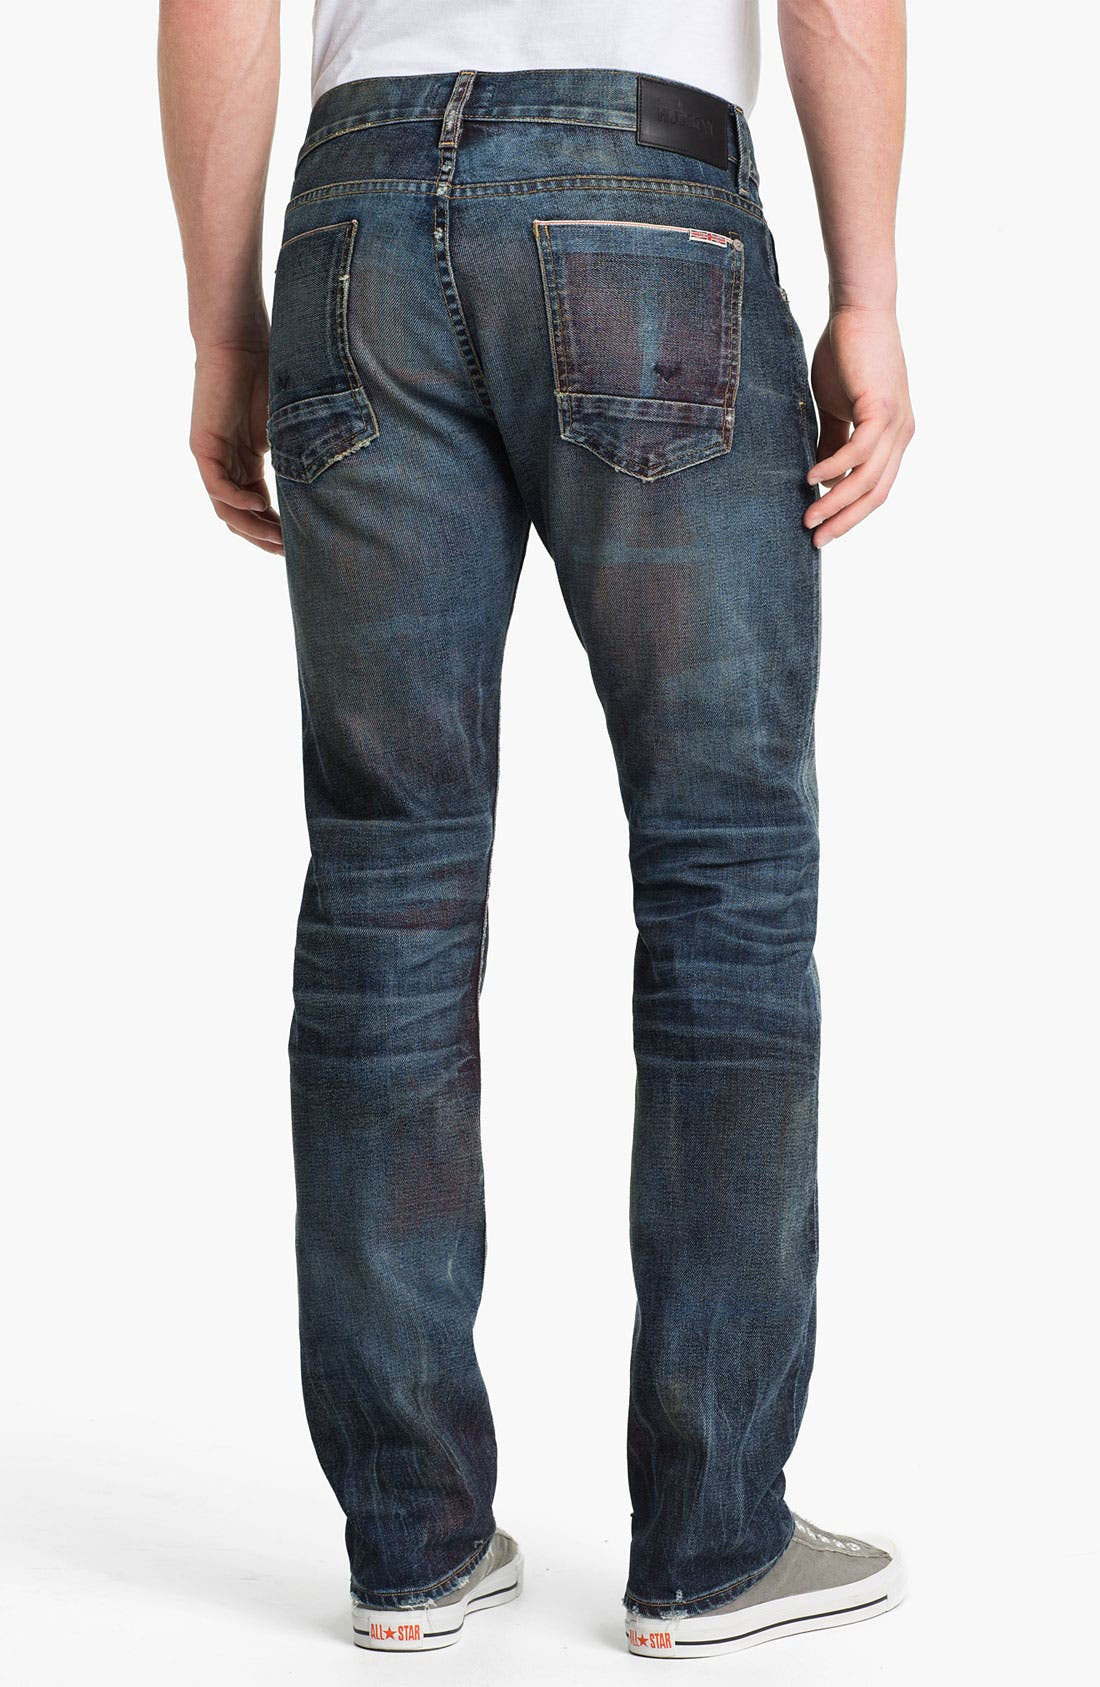 Alternate Image 1 Selected - Hudson 'Byron - 10th Anniversary Limited Edition' Selvedge Straight Leg Jeans (Royalty) (Nordstrom Exclusive)